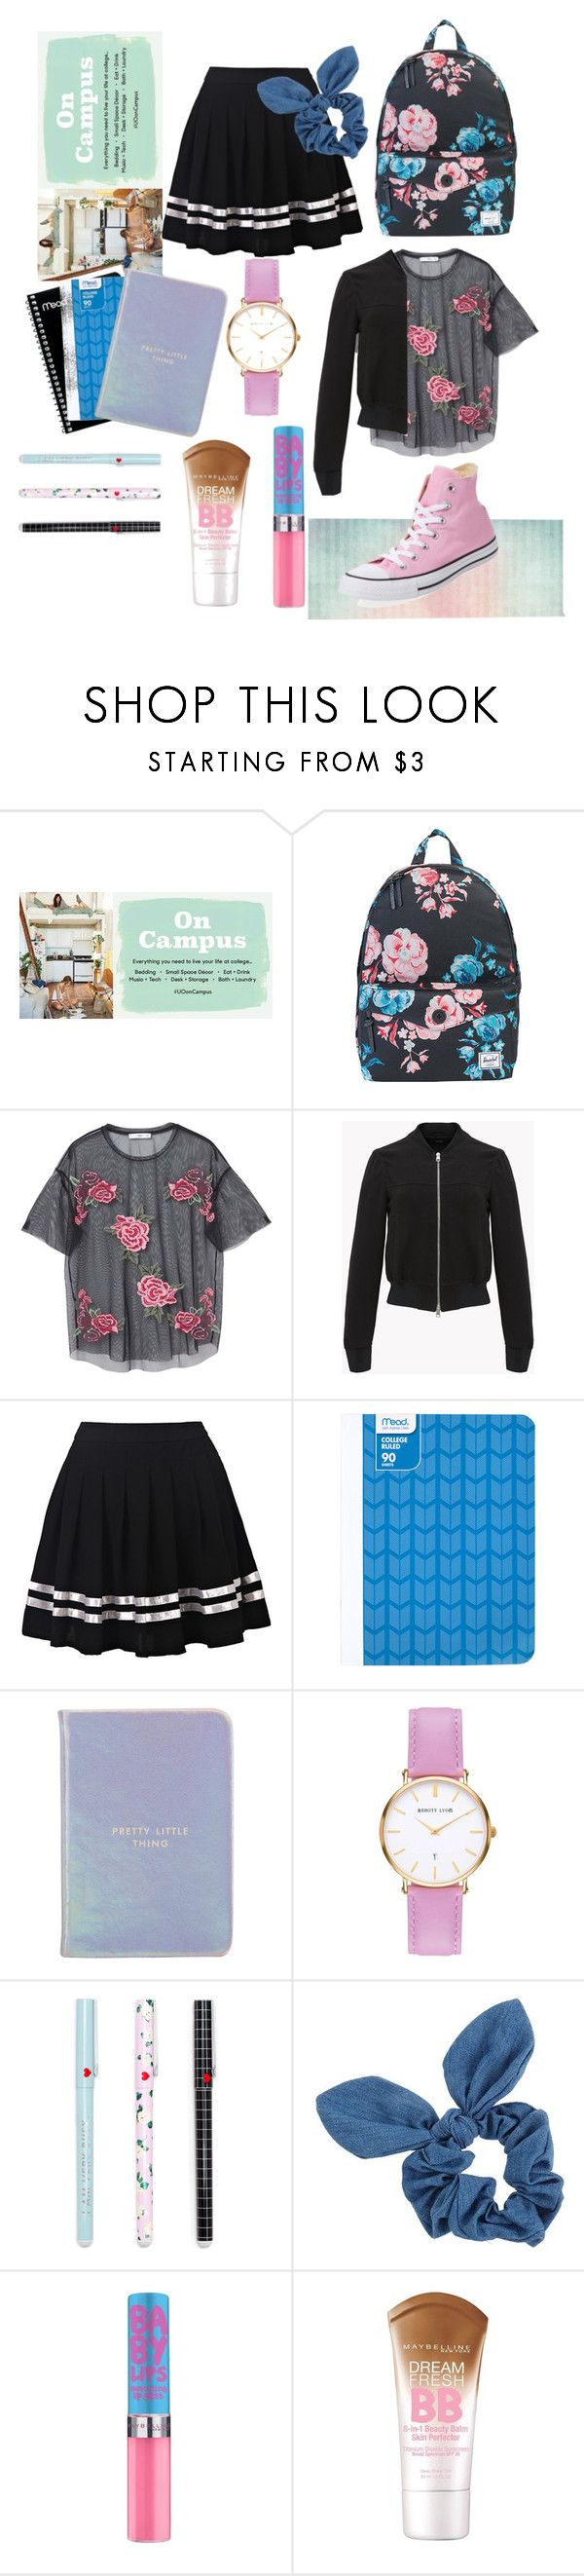 Go to Campus by feliciamia on Polyvore featuring MANGO, Converse, Herschel Supply Co., Abbott Lyon, Dorothy Perkins, Maybelline, Urban Outfitters, Kate Spade and Mead